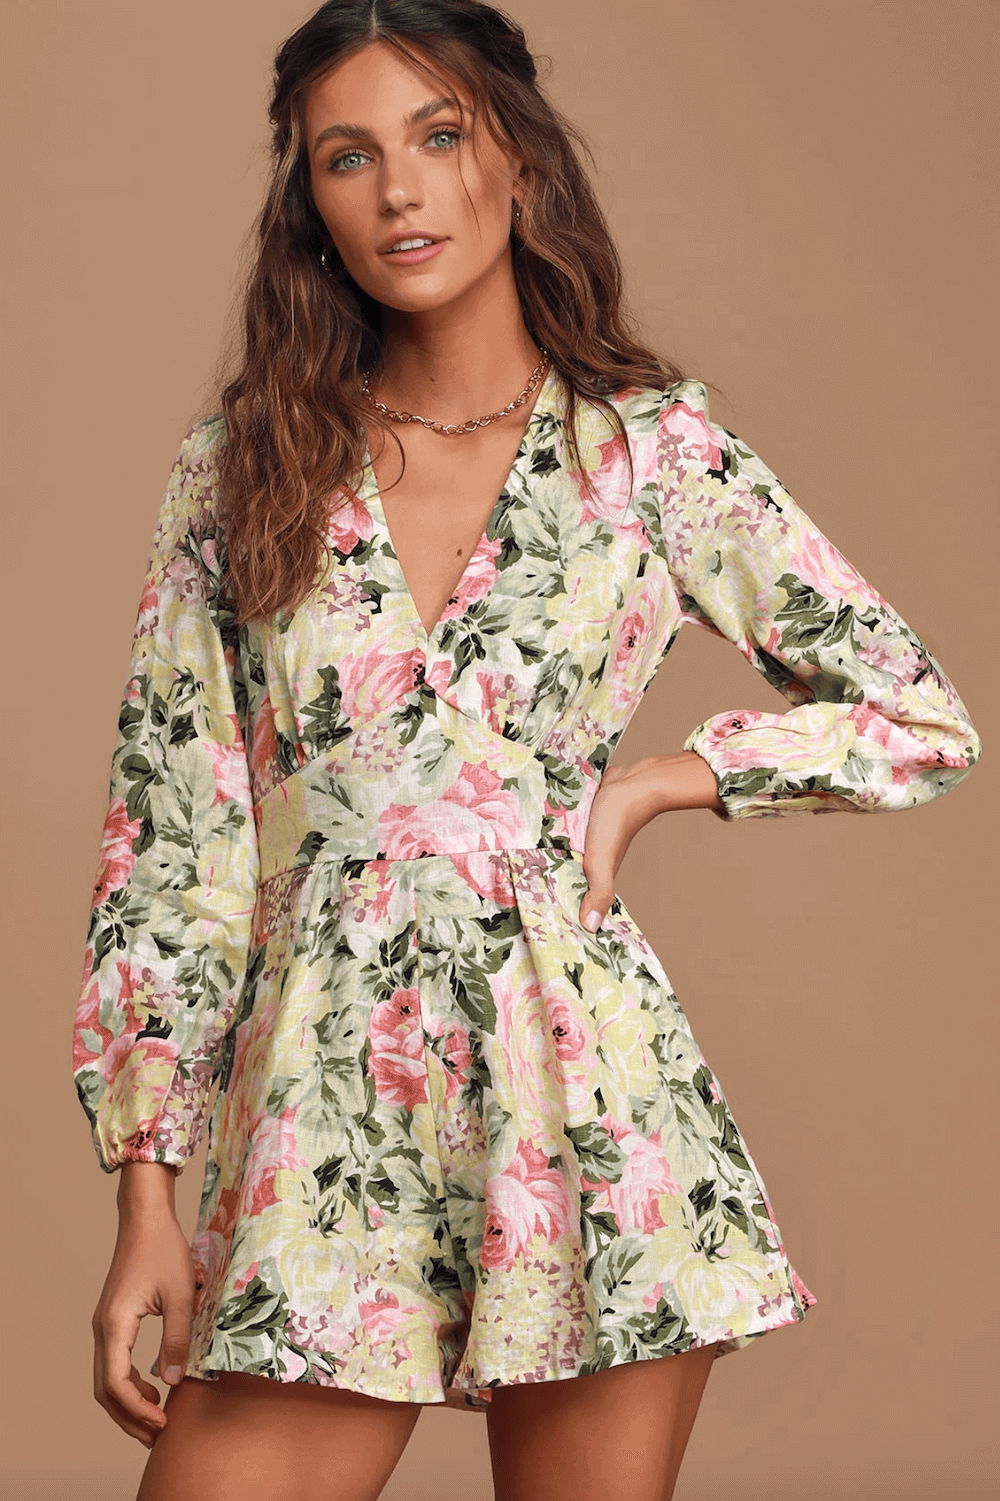 Wedding Guest Outfits White Floral Print Long Sleeve Romper What to Wear to a Wedding as a Guest 2